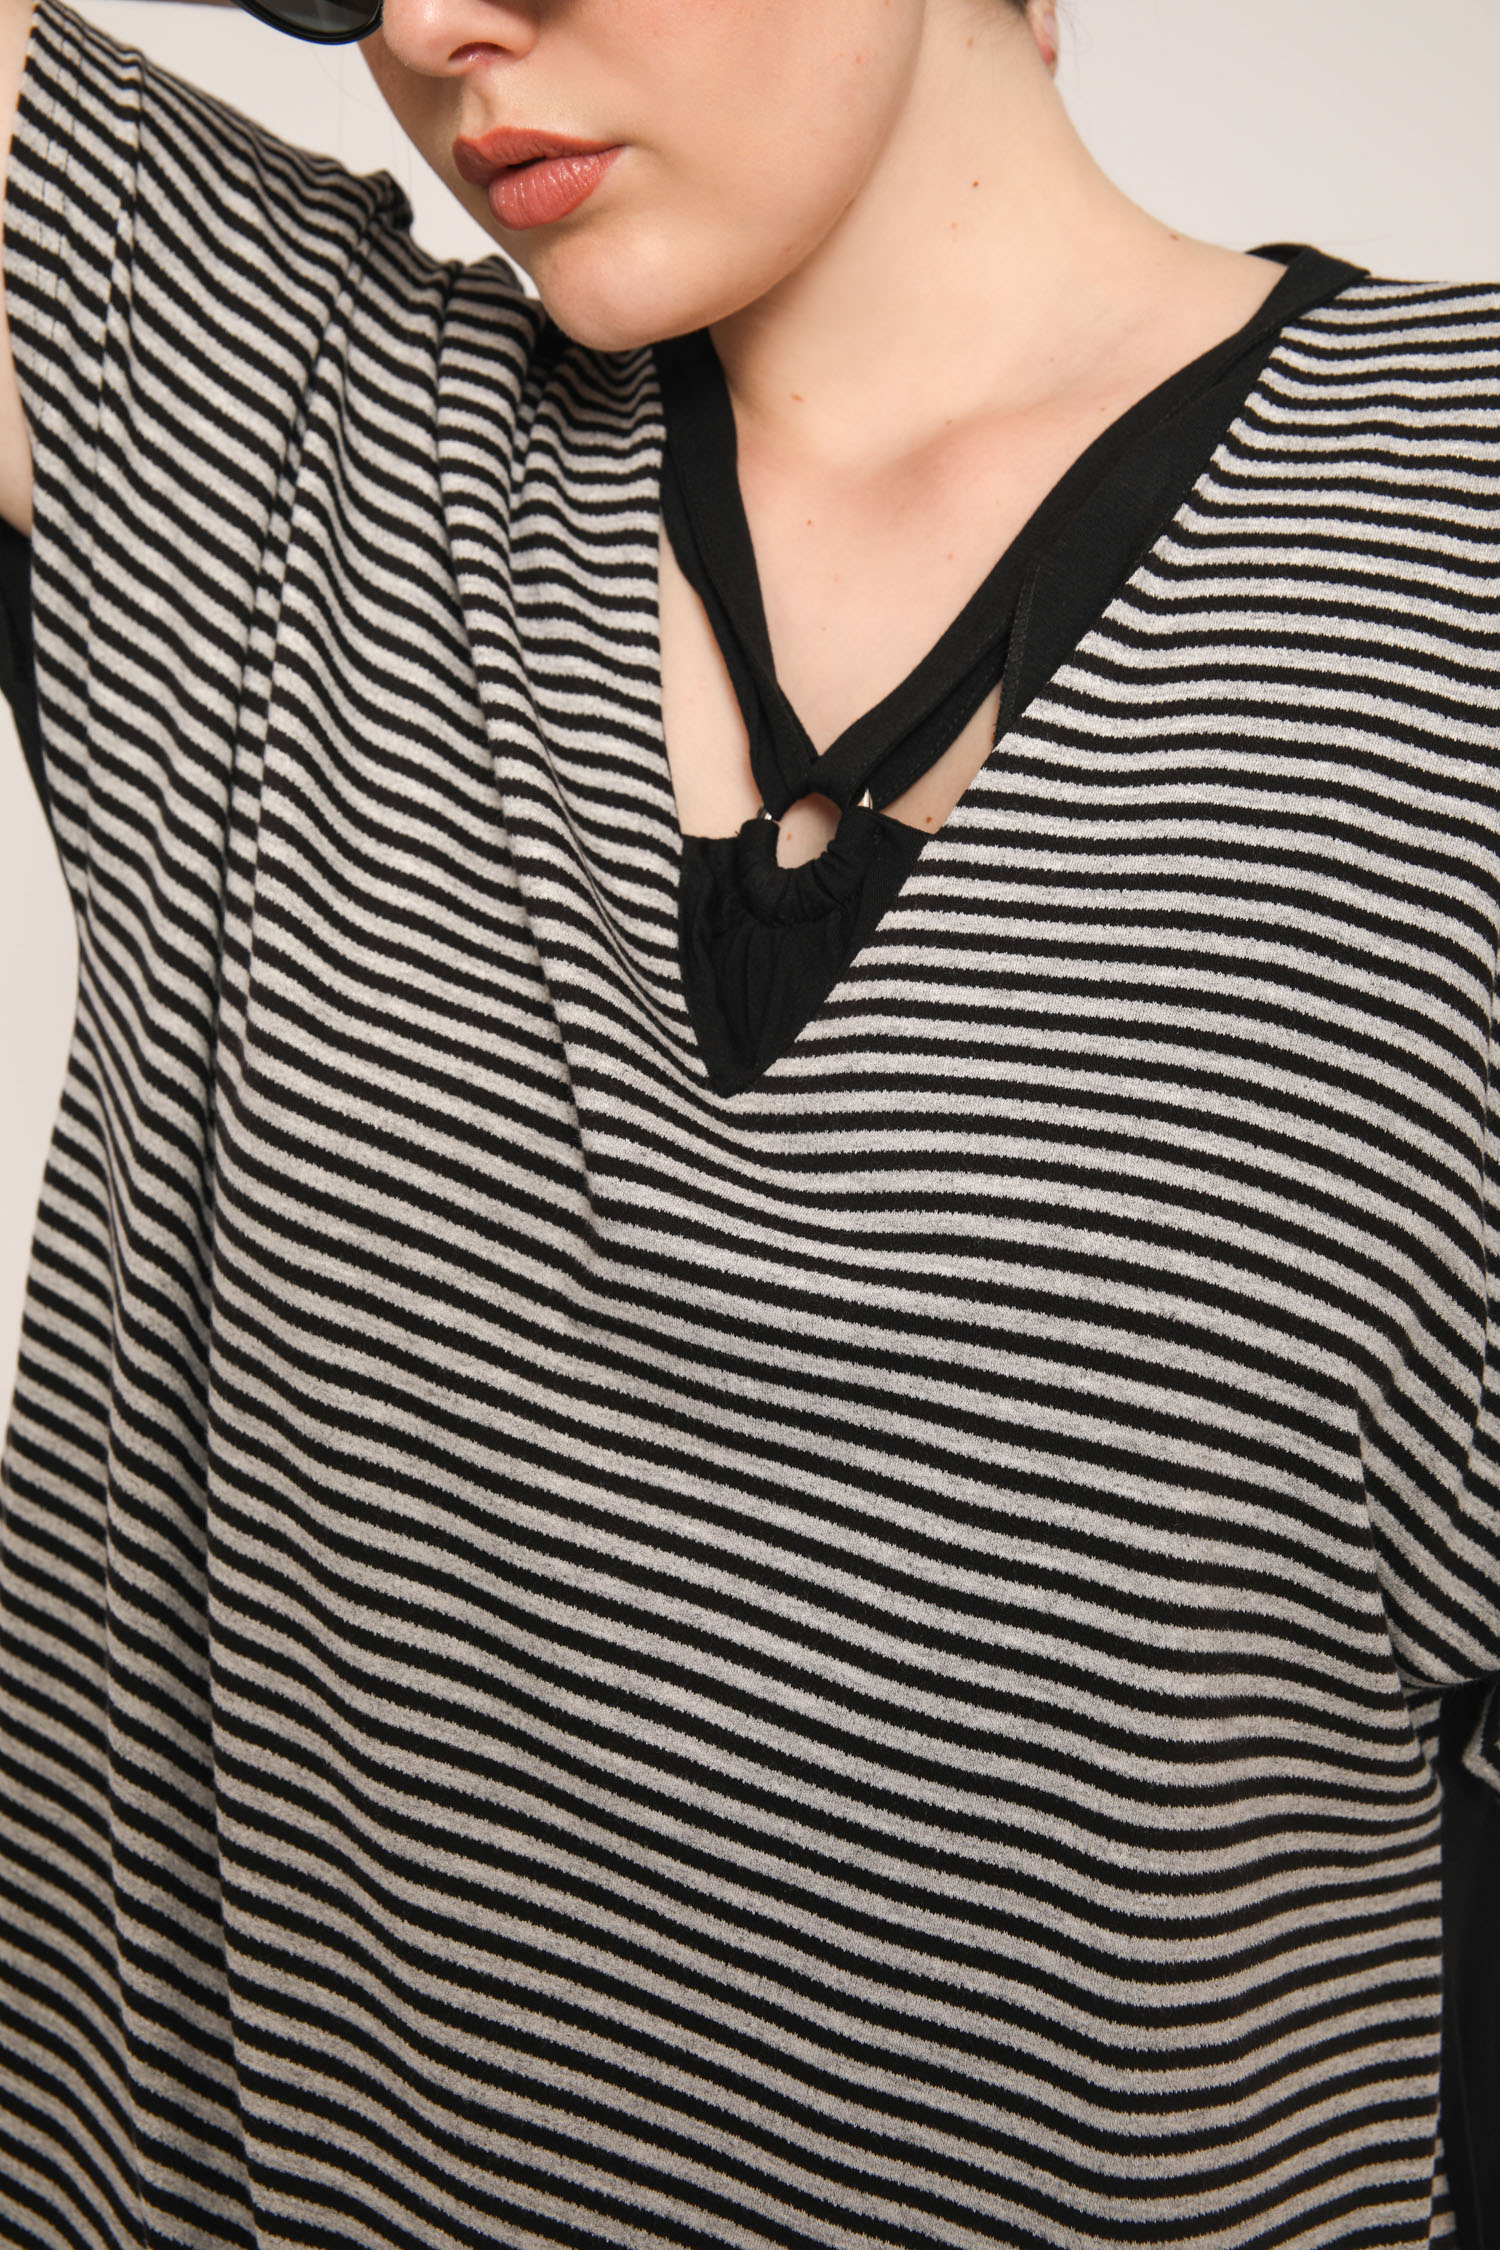 Striped T-shirt collar with ring